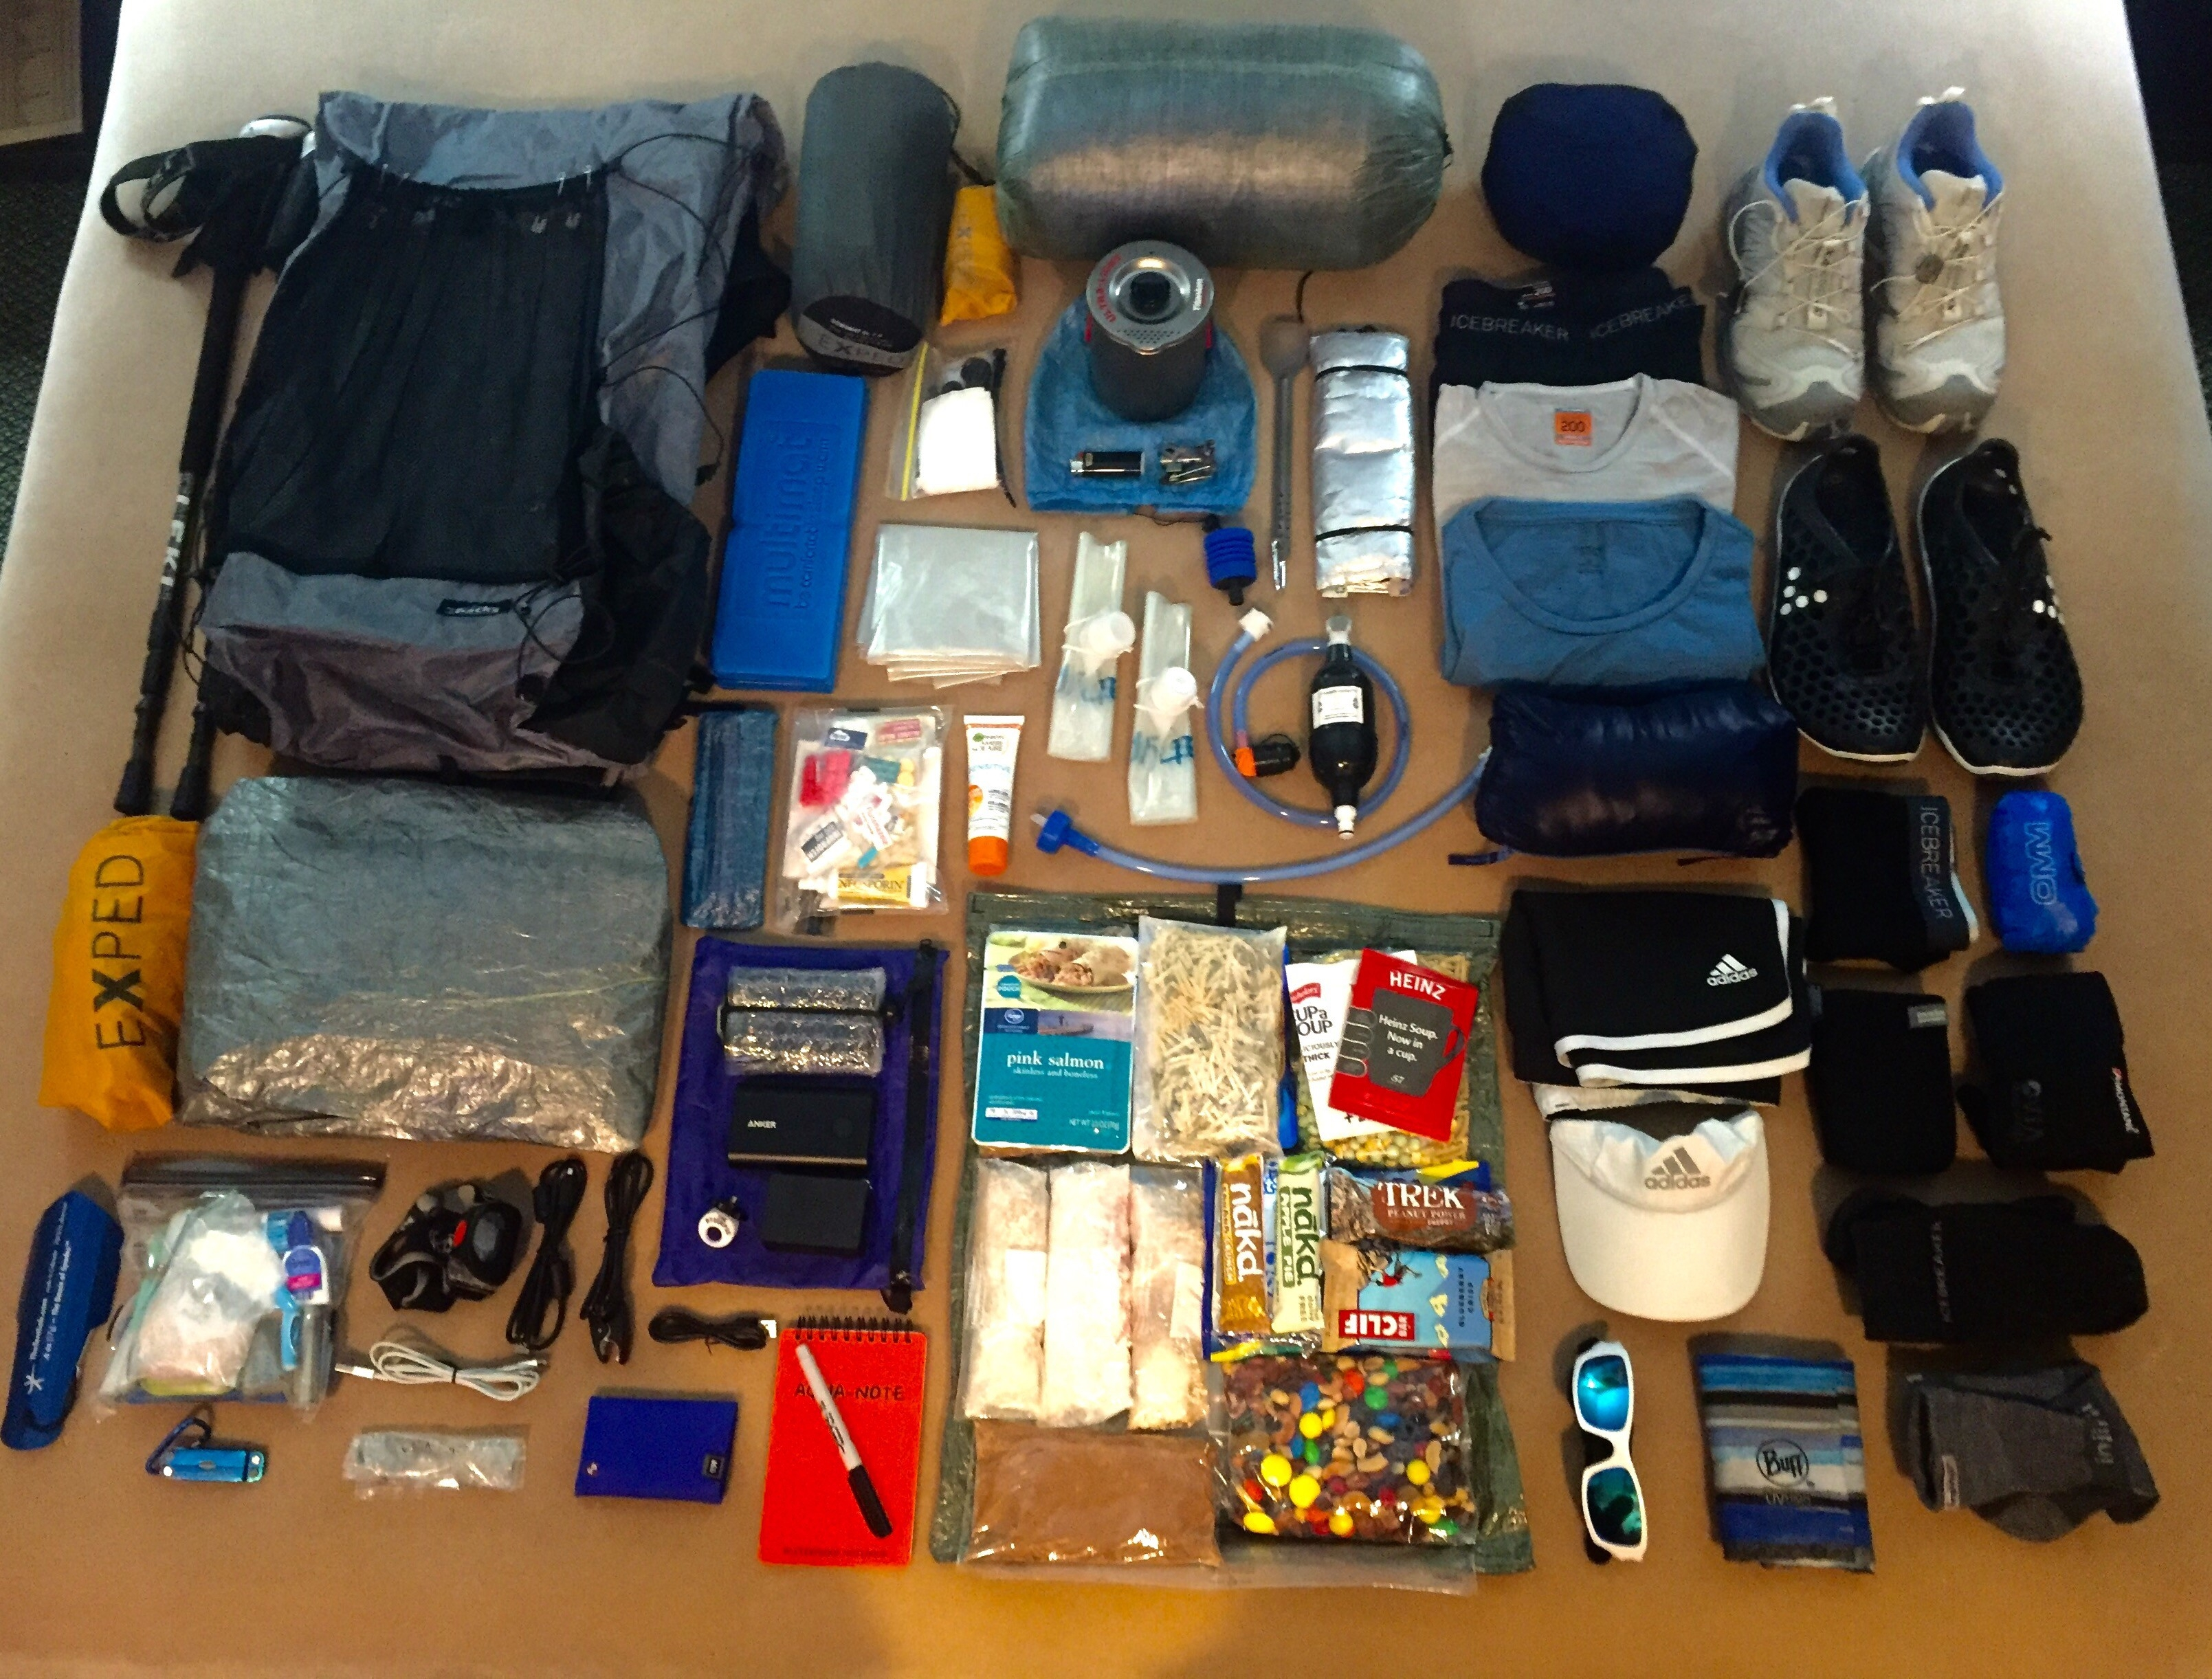 Pct Gear List – Zenlightened Voyager intended for Pct Gear List 36095